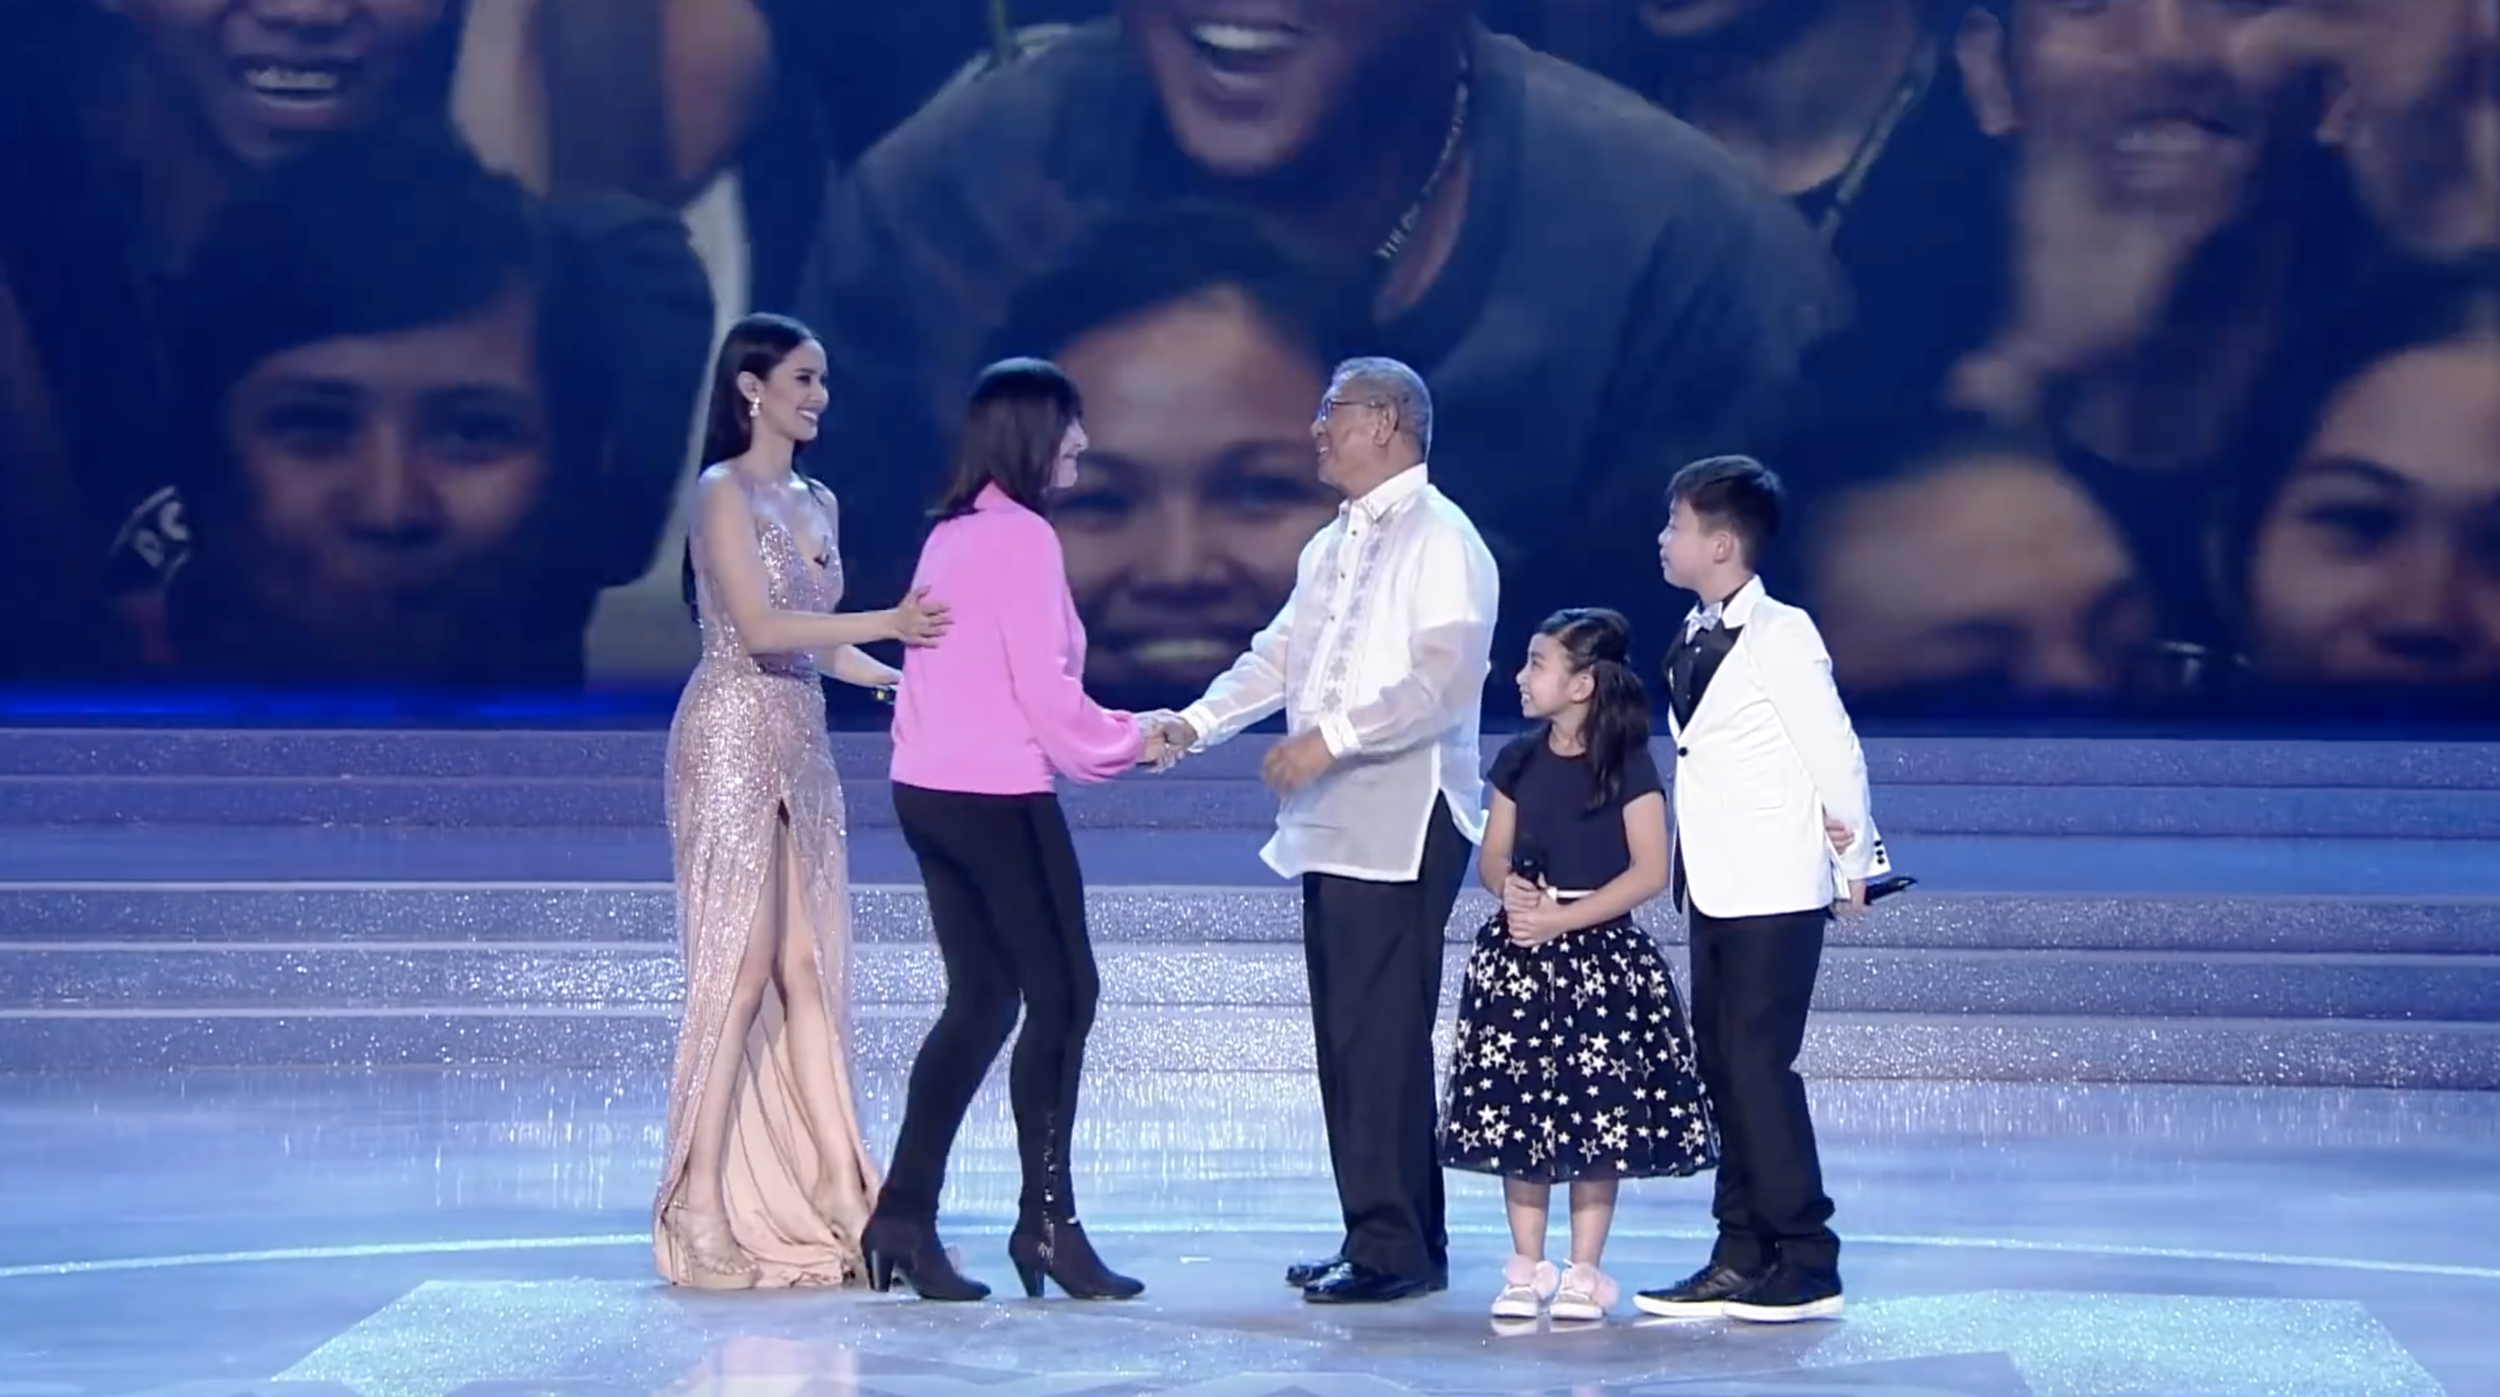 Father Rocky was awarded the International Humanitarian award 2017 by Julia Morley during the Miss World coronation night in Sanya, China